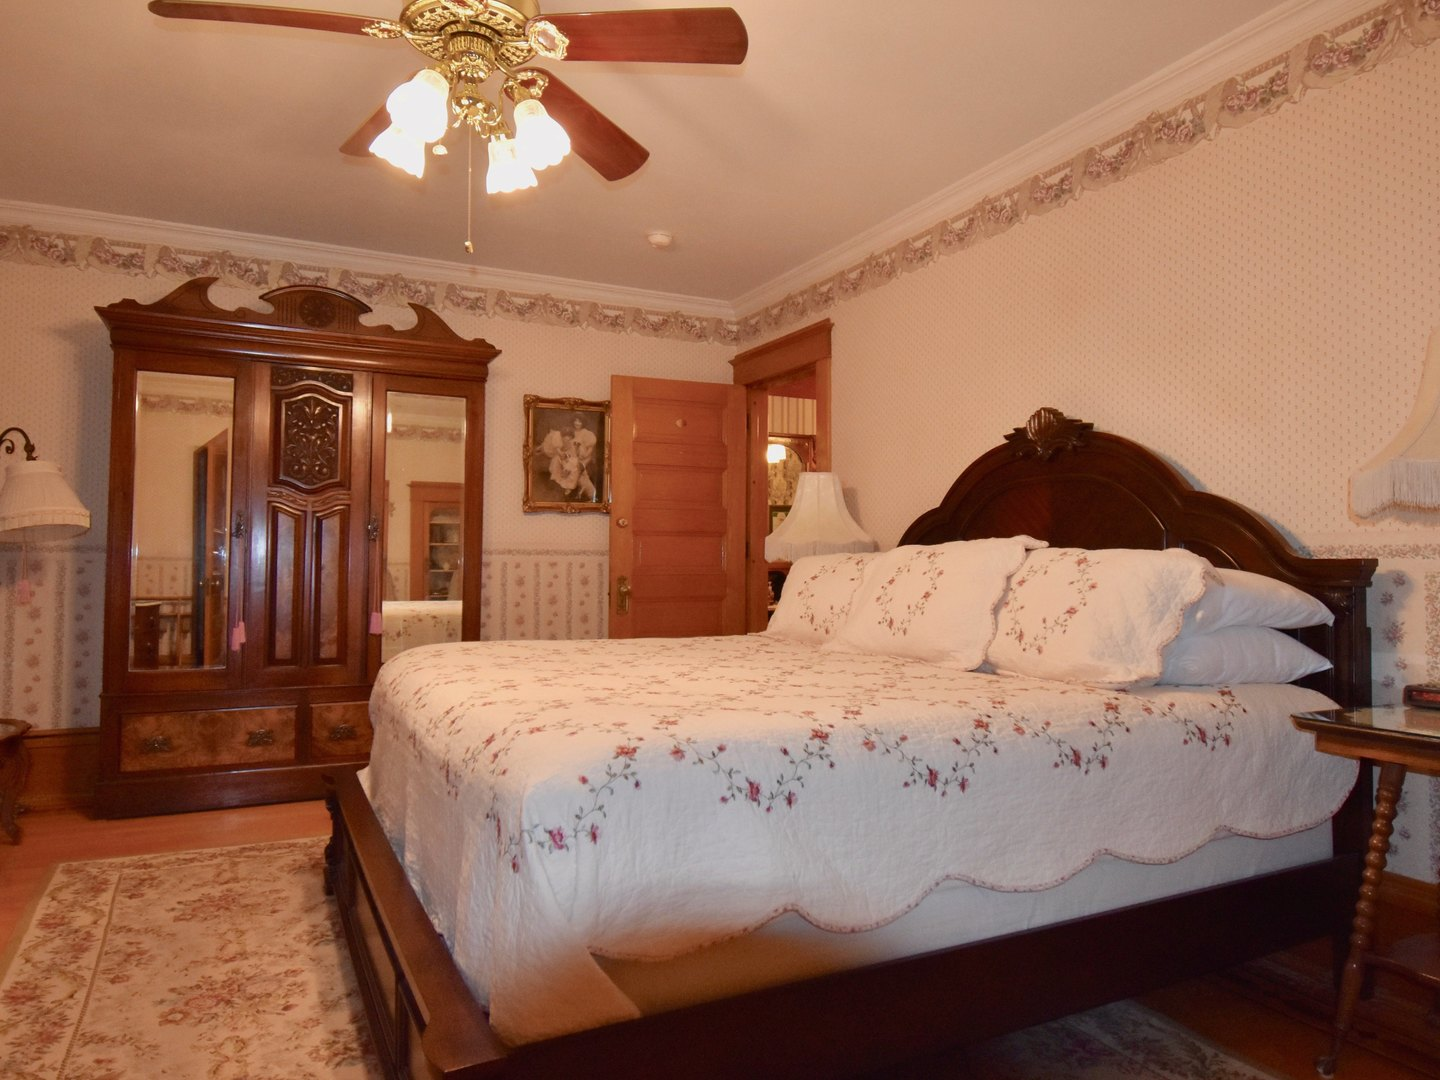 A bedroom with a bed and desk in a room at The Scofield House.